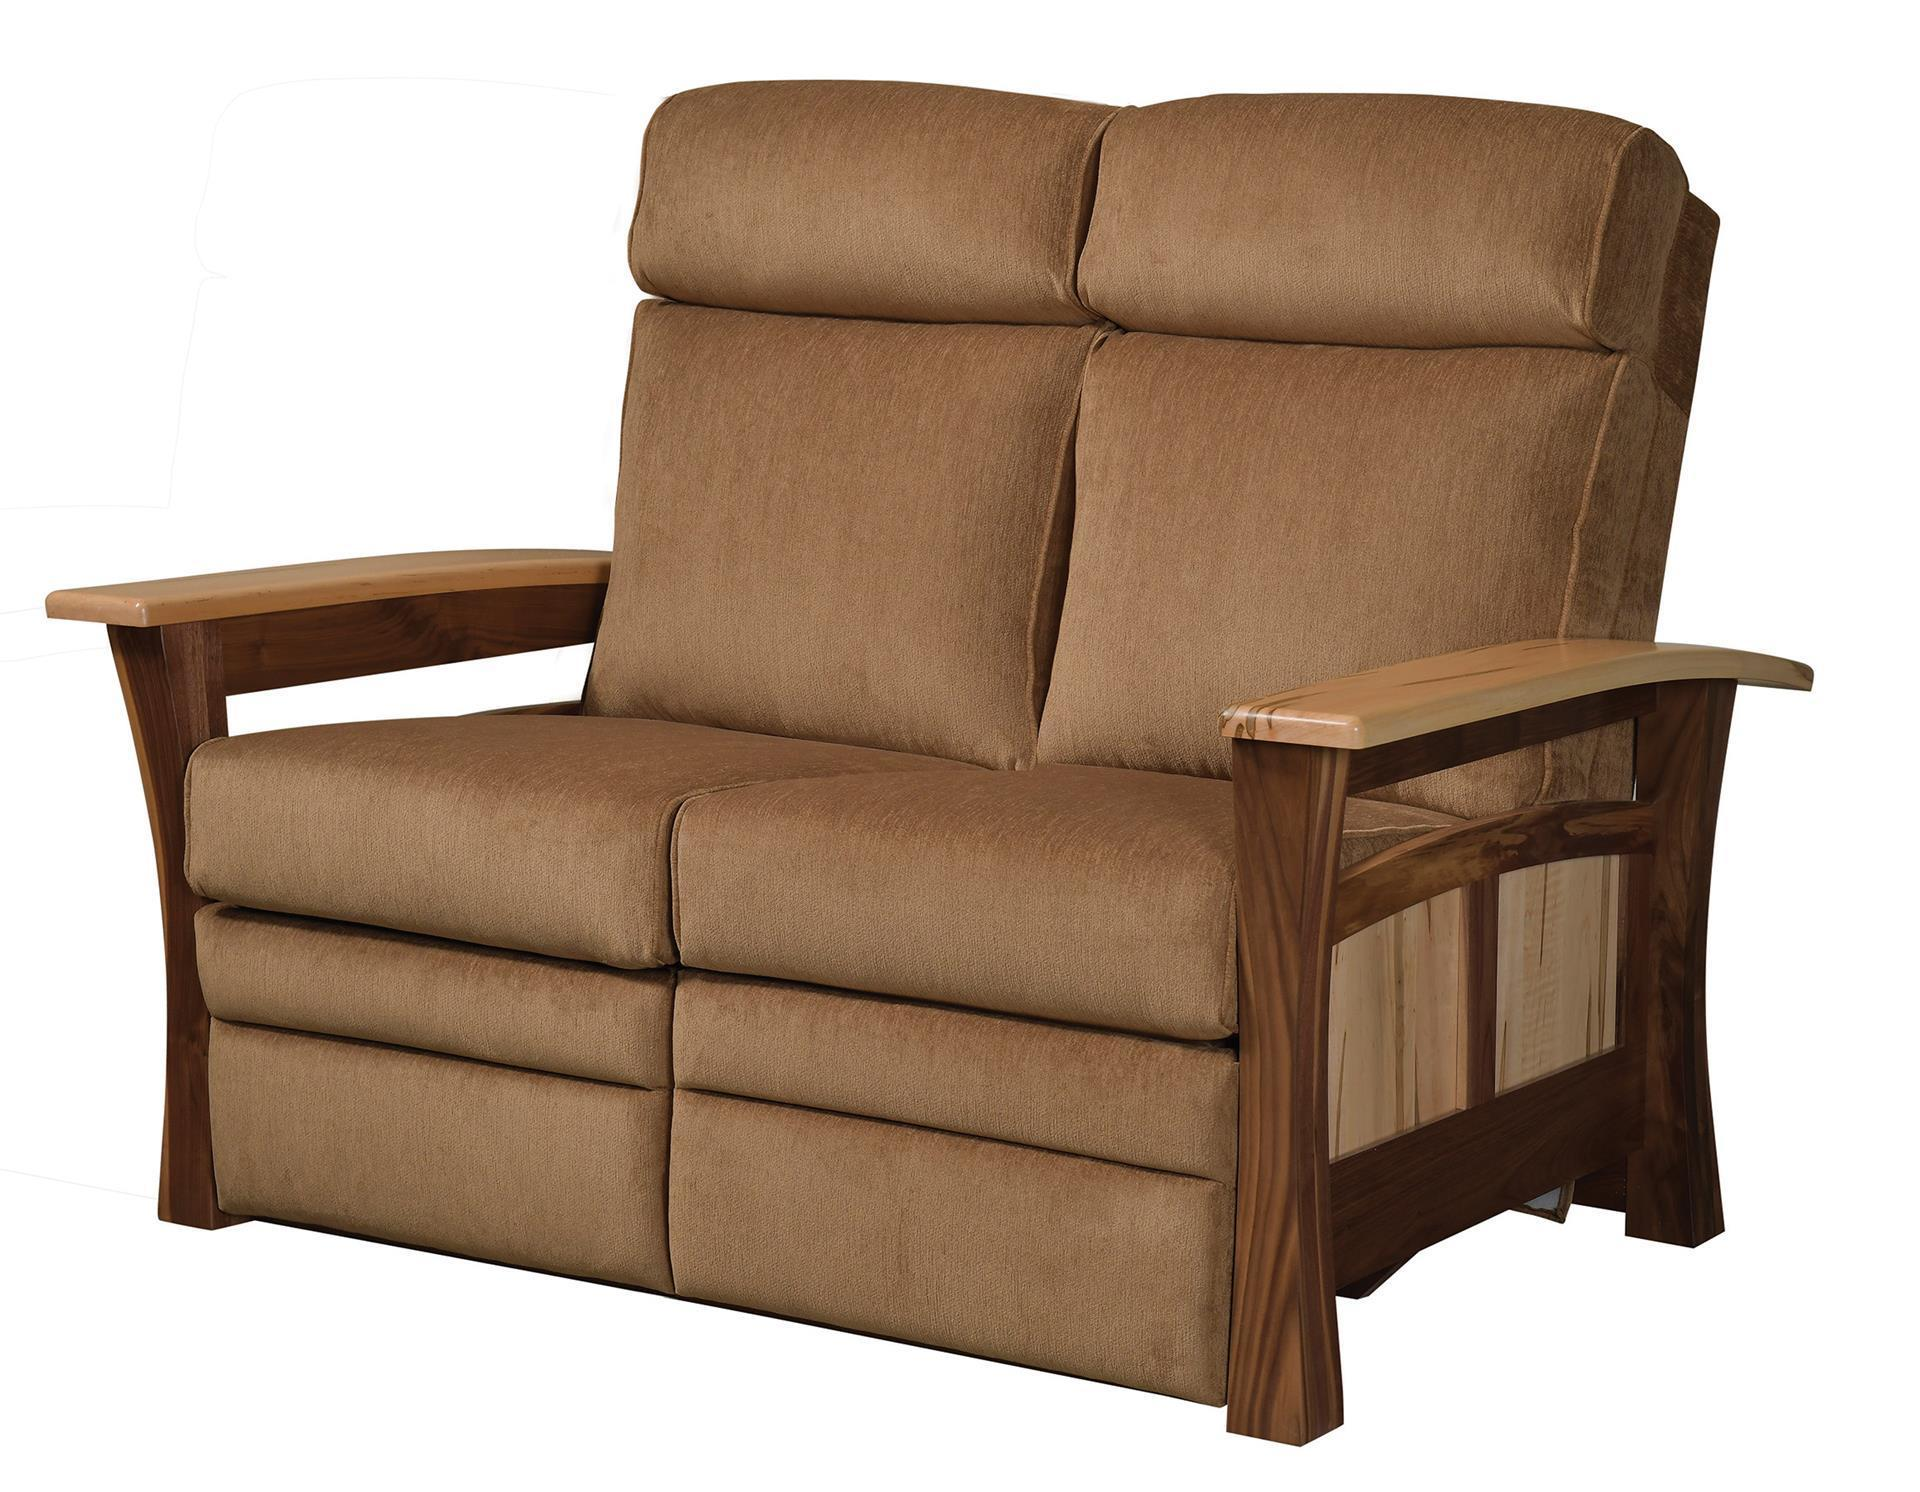 Shaker Gateway Recliner Loveseat From Dutchcrafters Amish Furniture